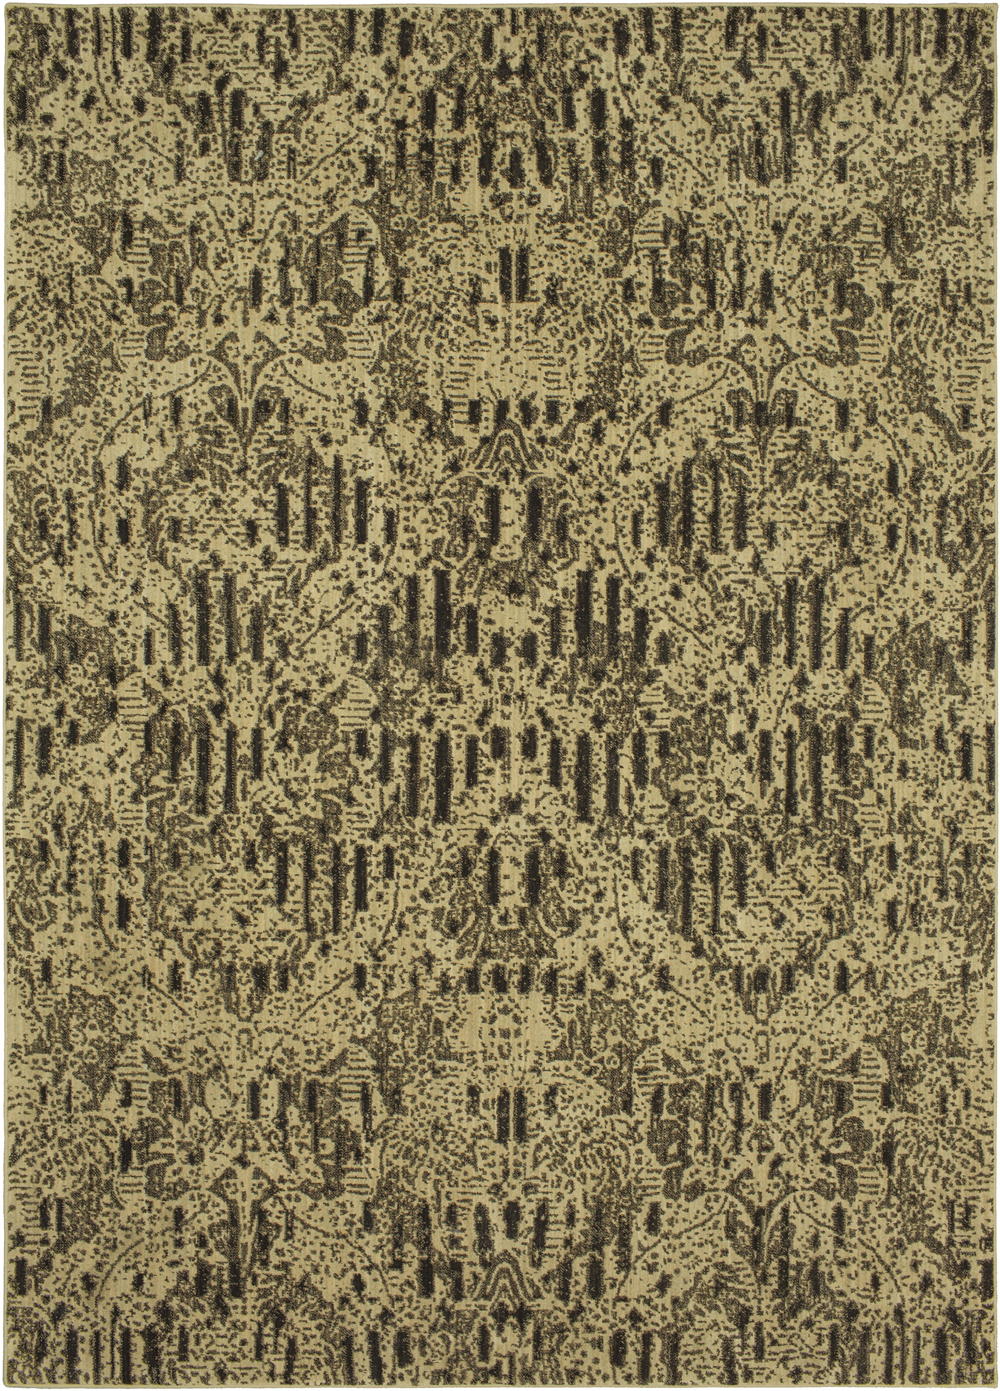 Karastan Spice Market 91662 Angelique Charcoal by Patina Vie Rug